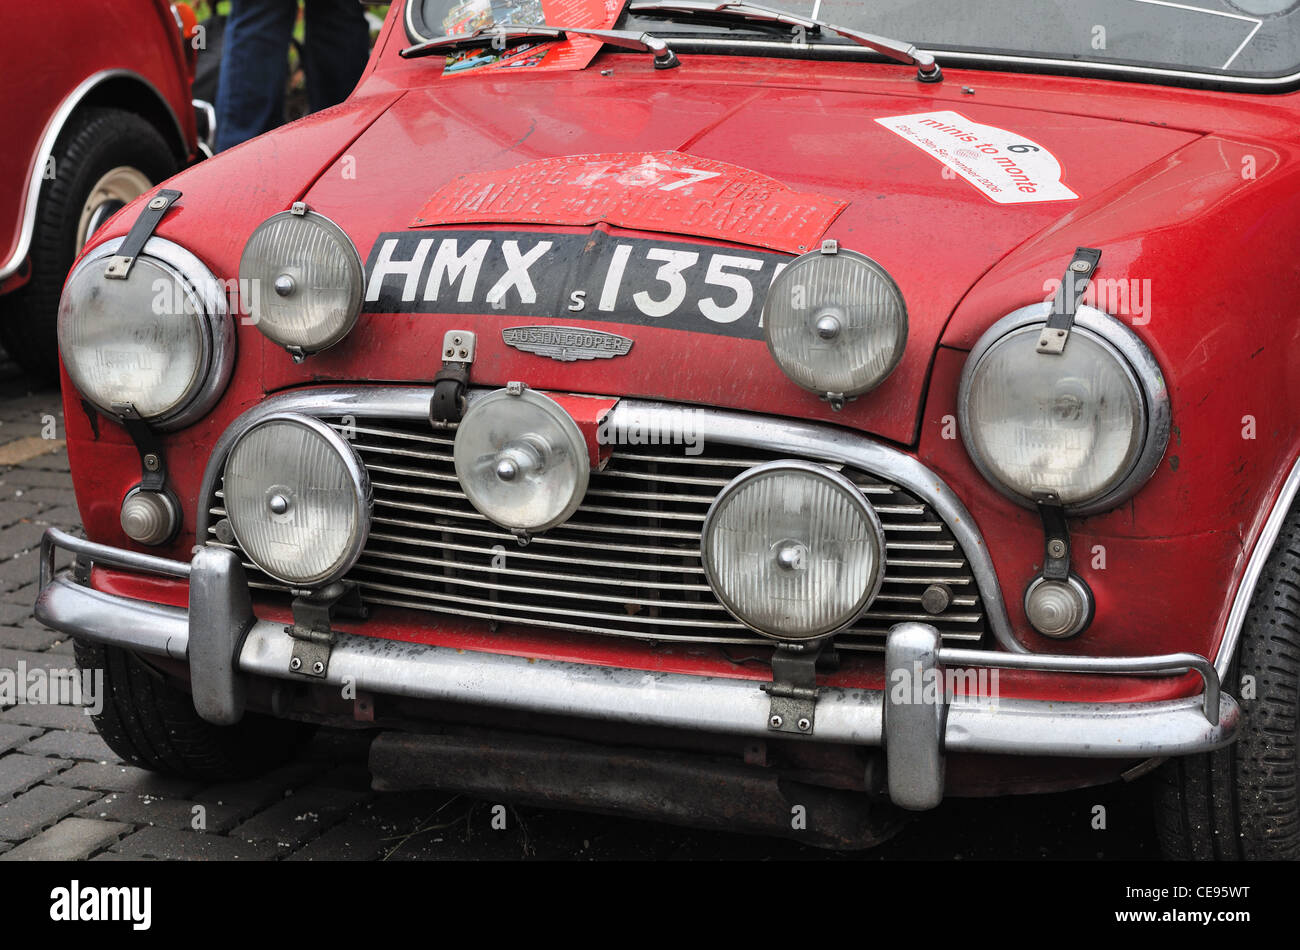 Austin Mini Cooper car at the Monte Carlo Rallye starting point in Clydebank, Scotland, UK - Stock Image